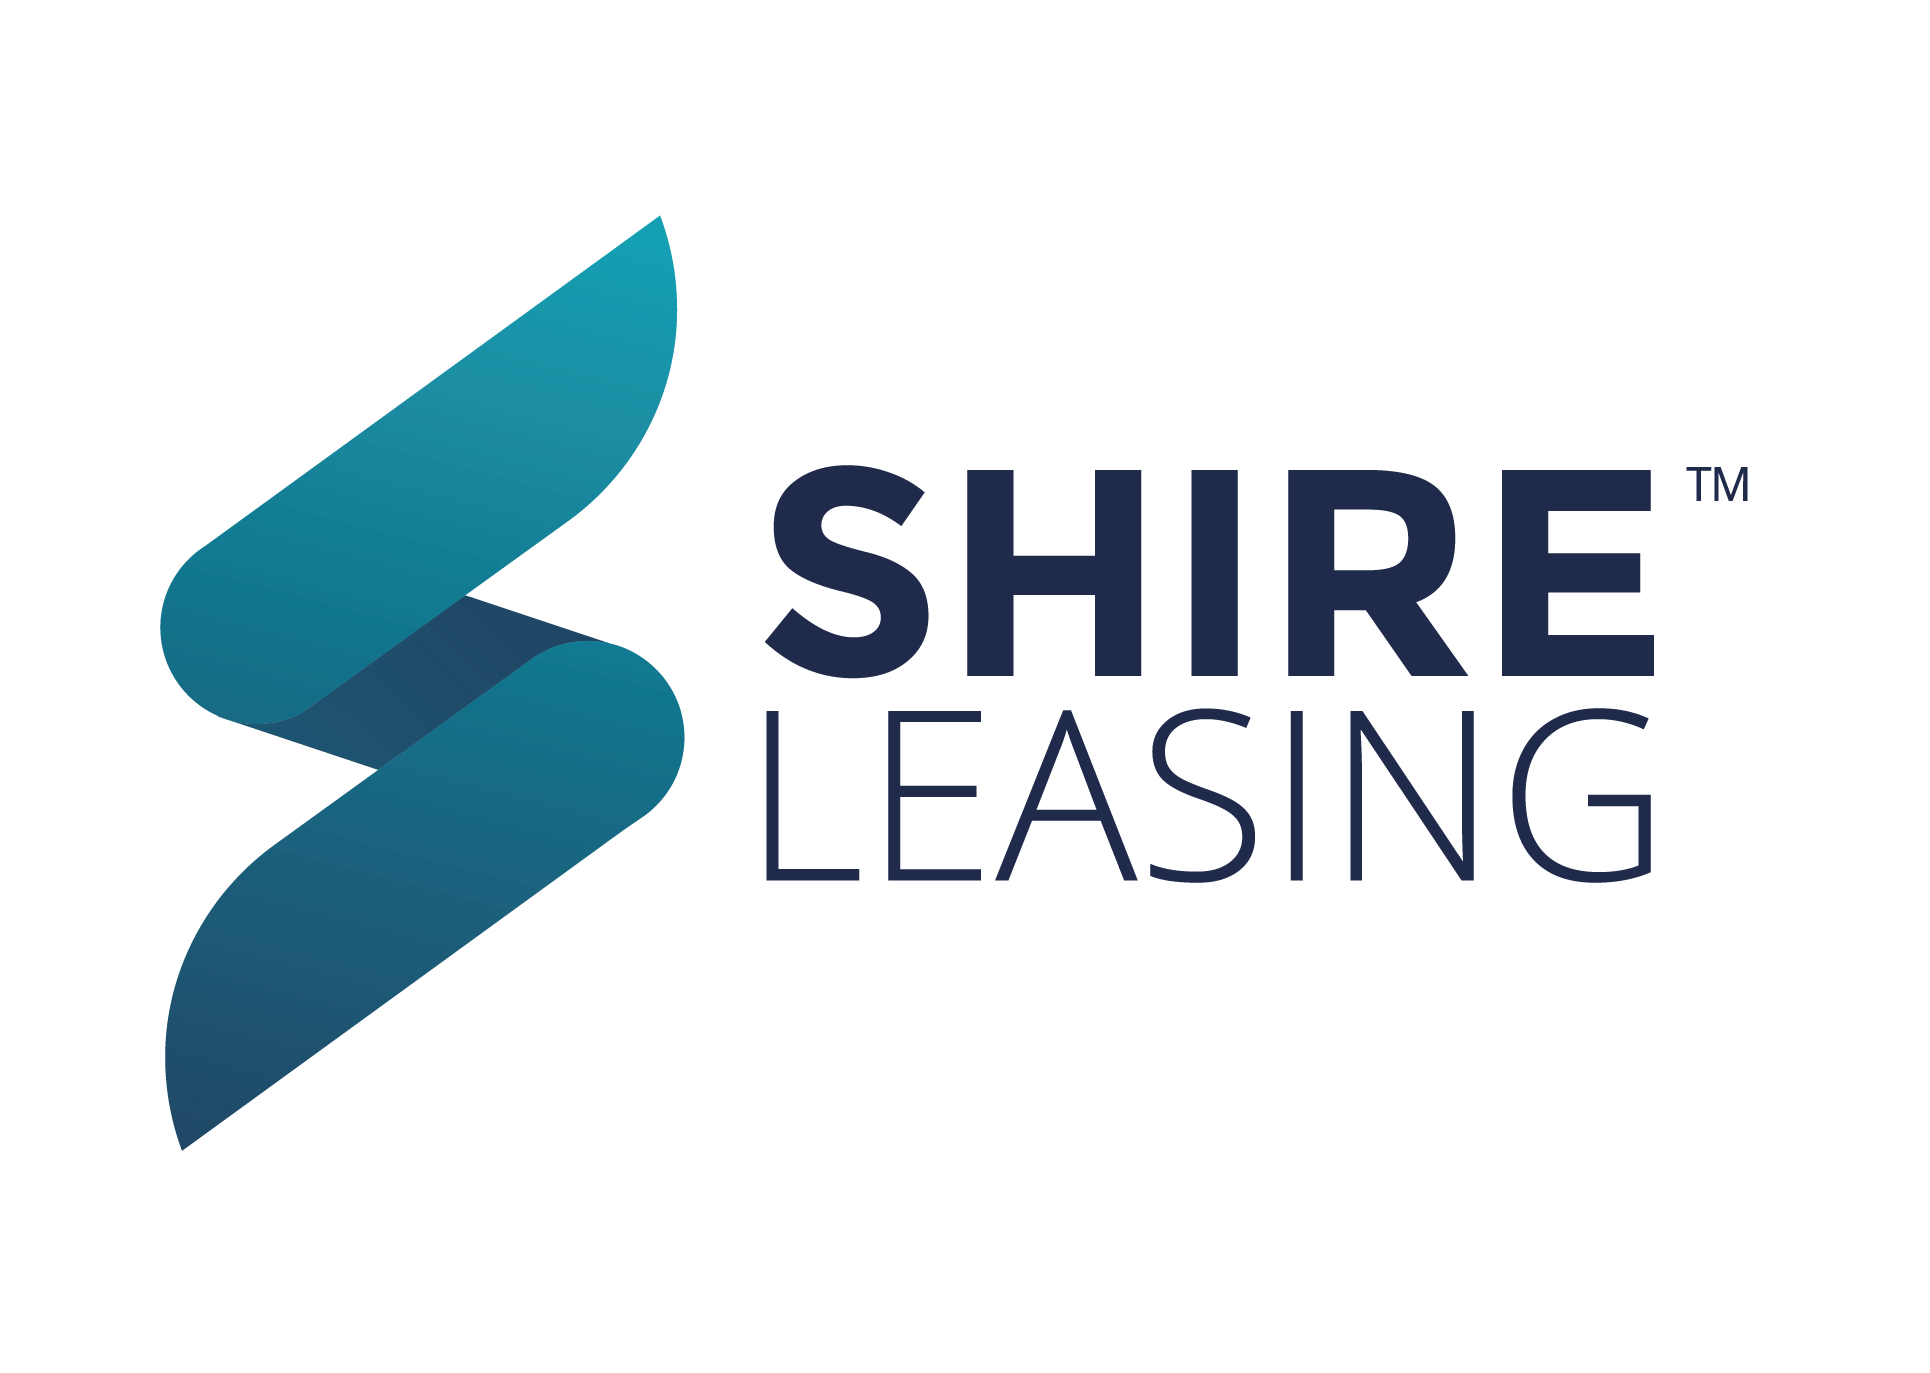 Shire Leasing.